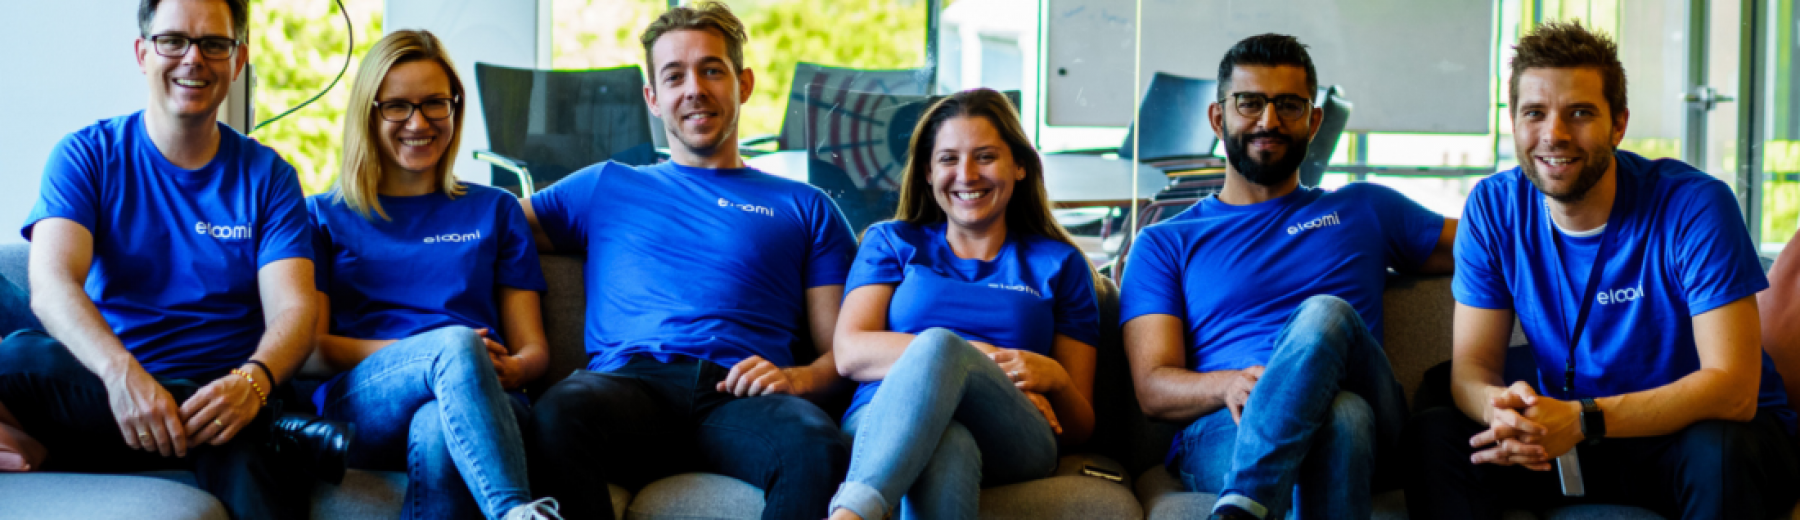 A group of eloomi coworkers sitting on a couch having a good time after an onboarding meeting